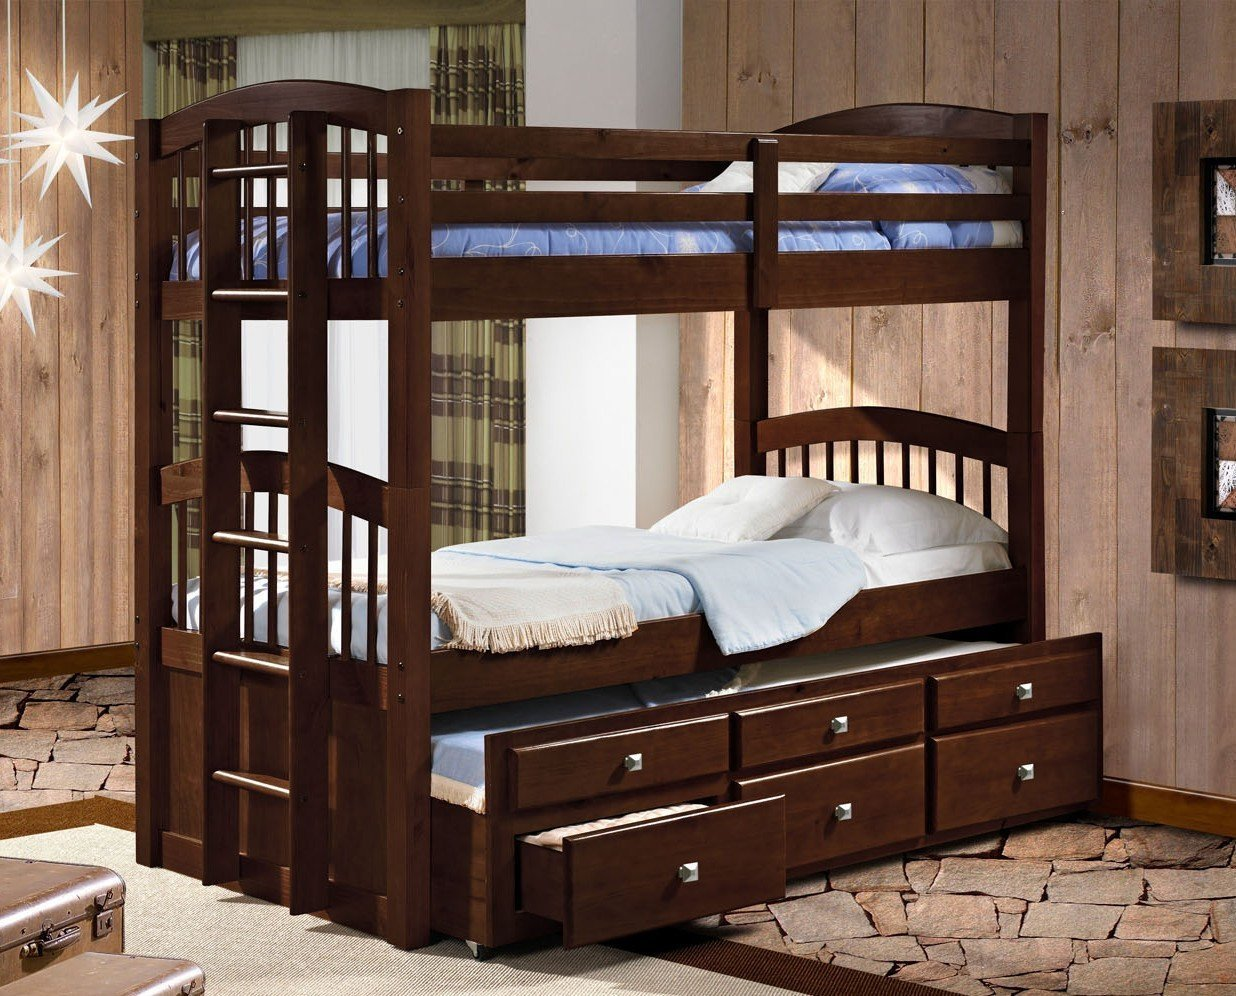 Captains Bunk Bed with Storage & Free Storage Pockets